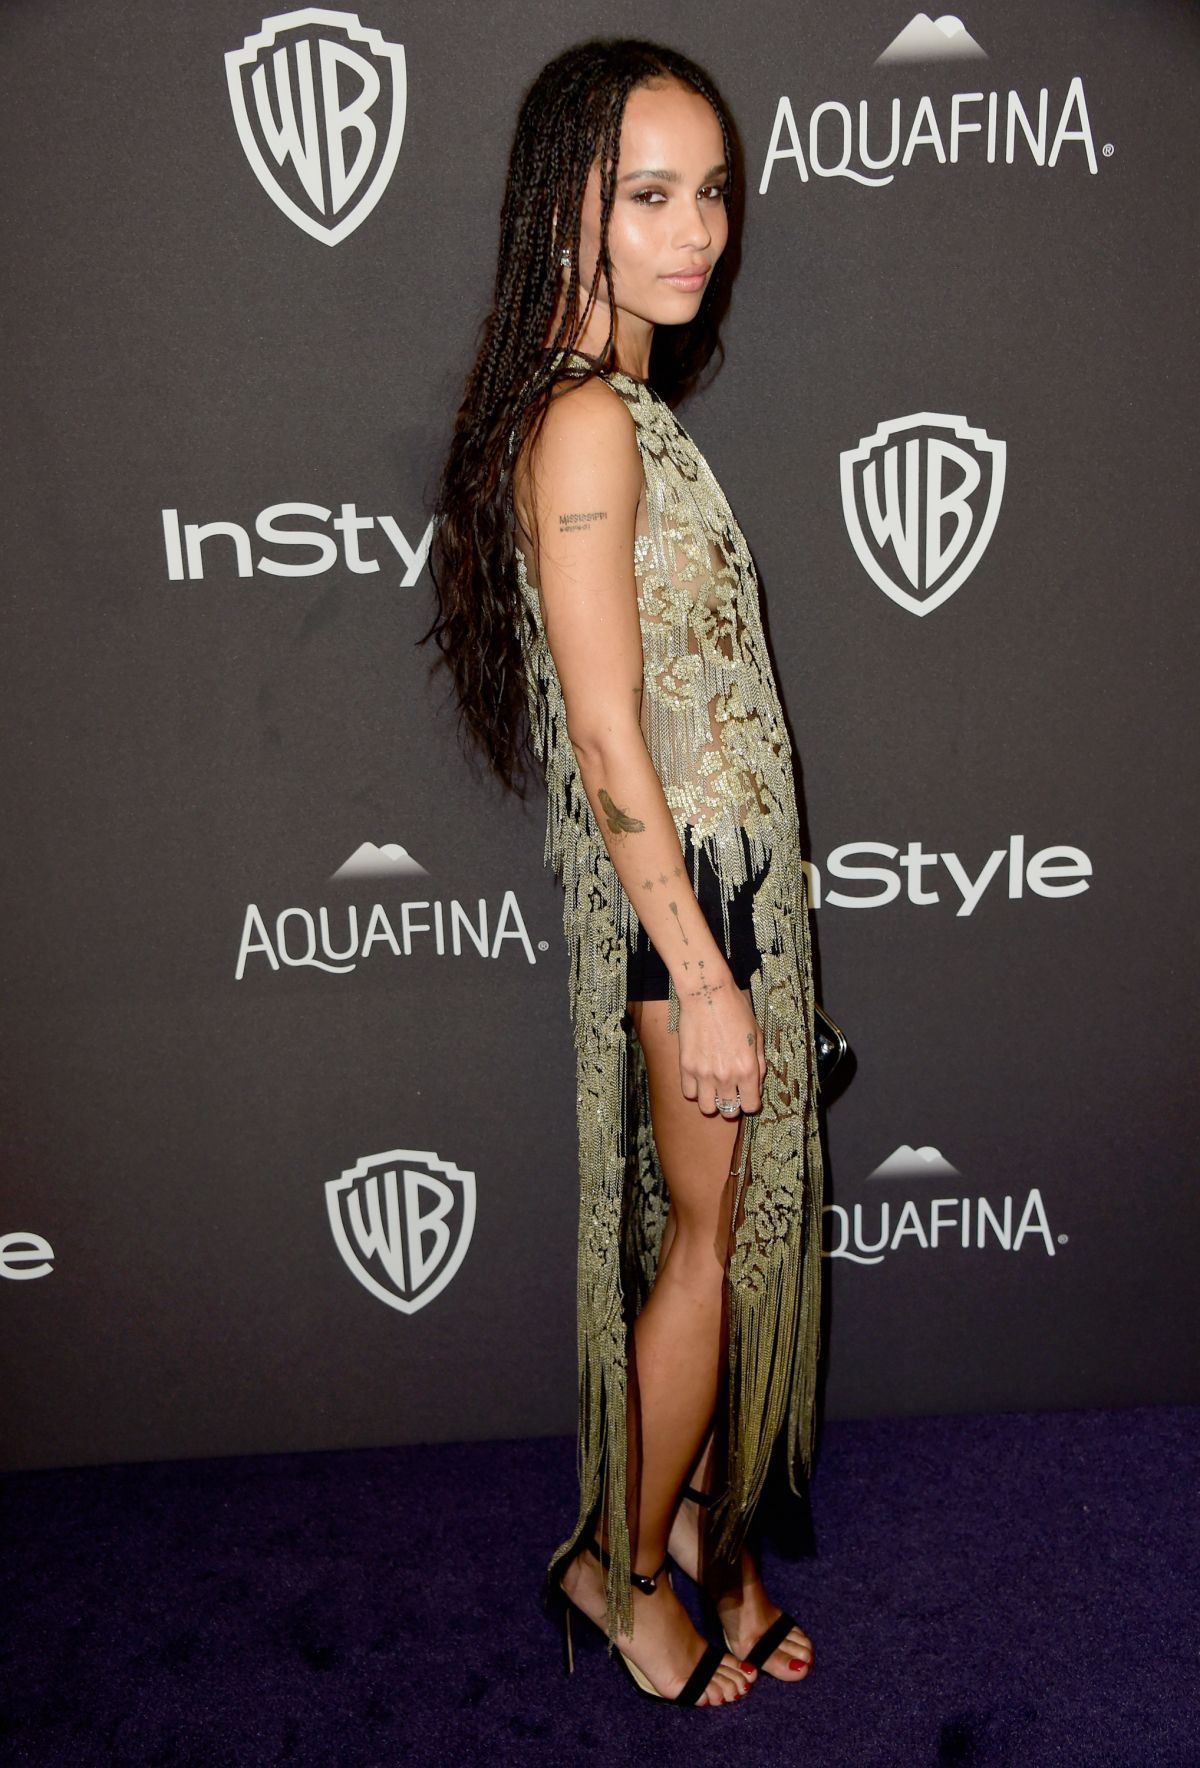 zoe-kravitz-at-instyle-and-warner-bros.-2016-golden-globe-awards-post-party-in-beverly-hills-01-10-2016_1